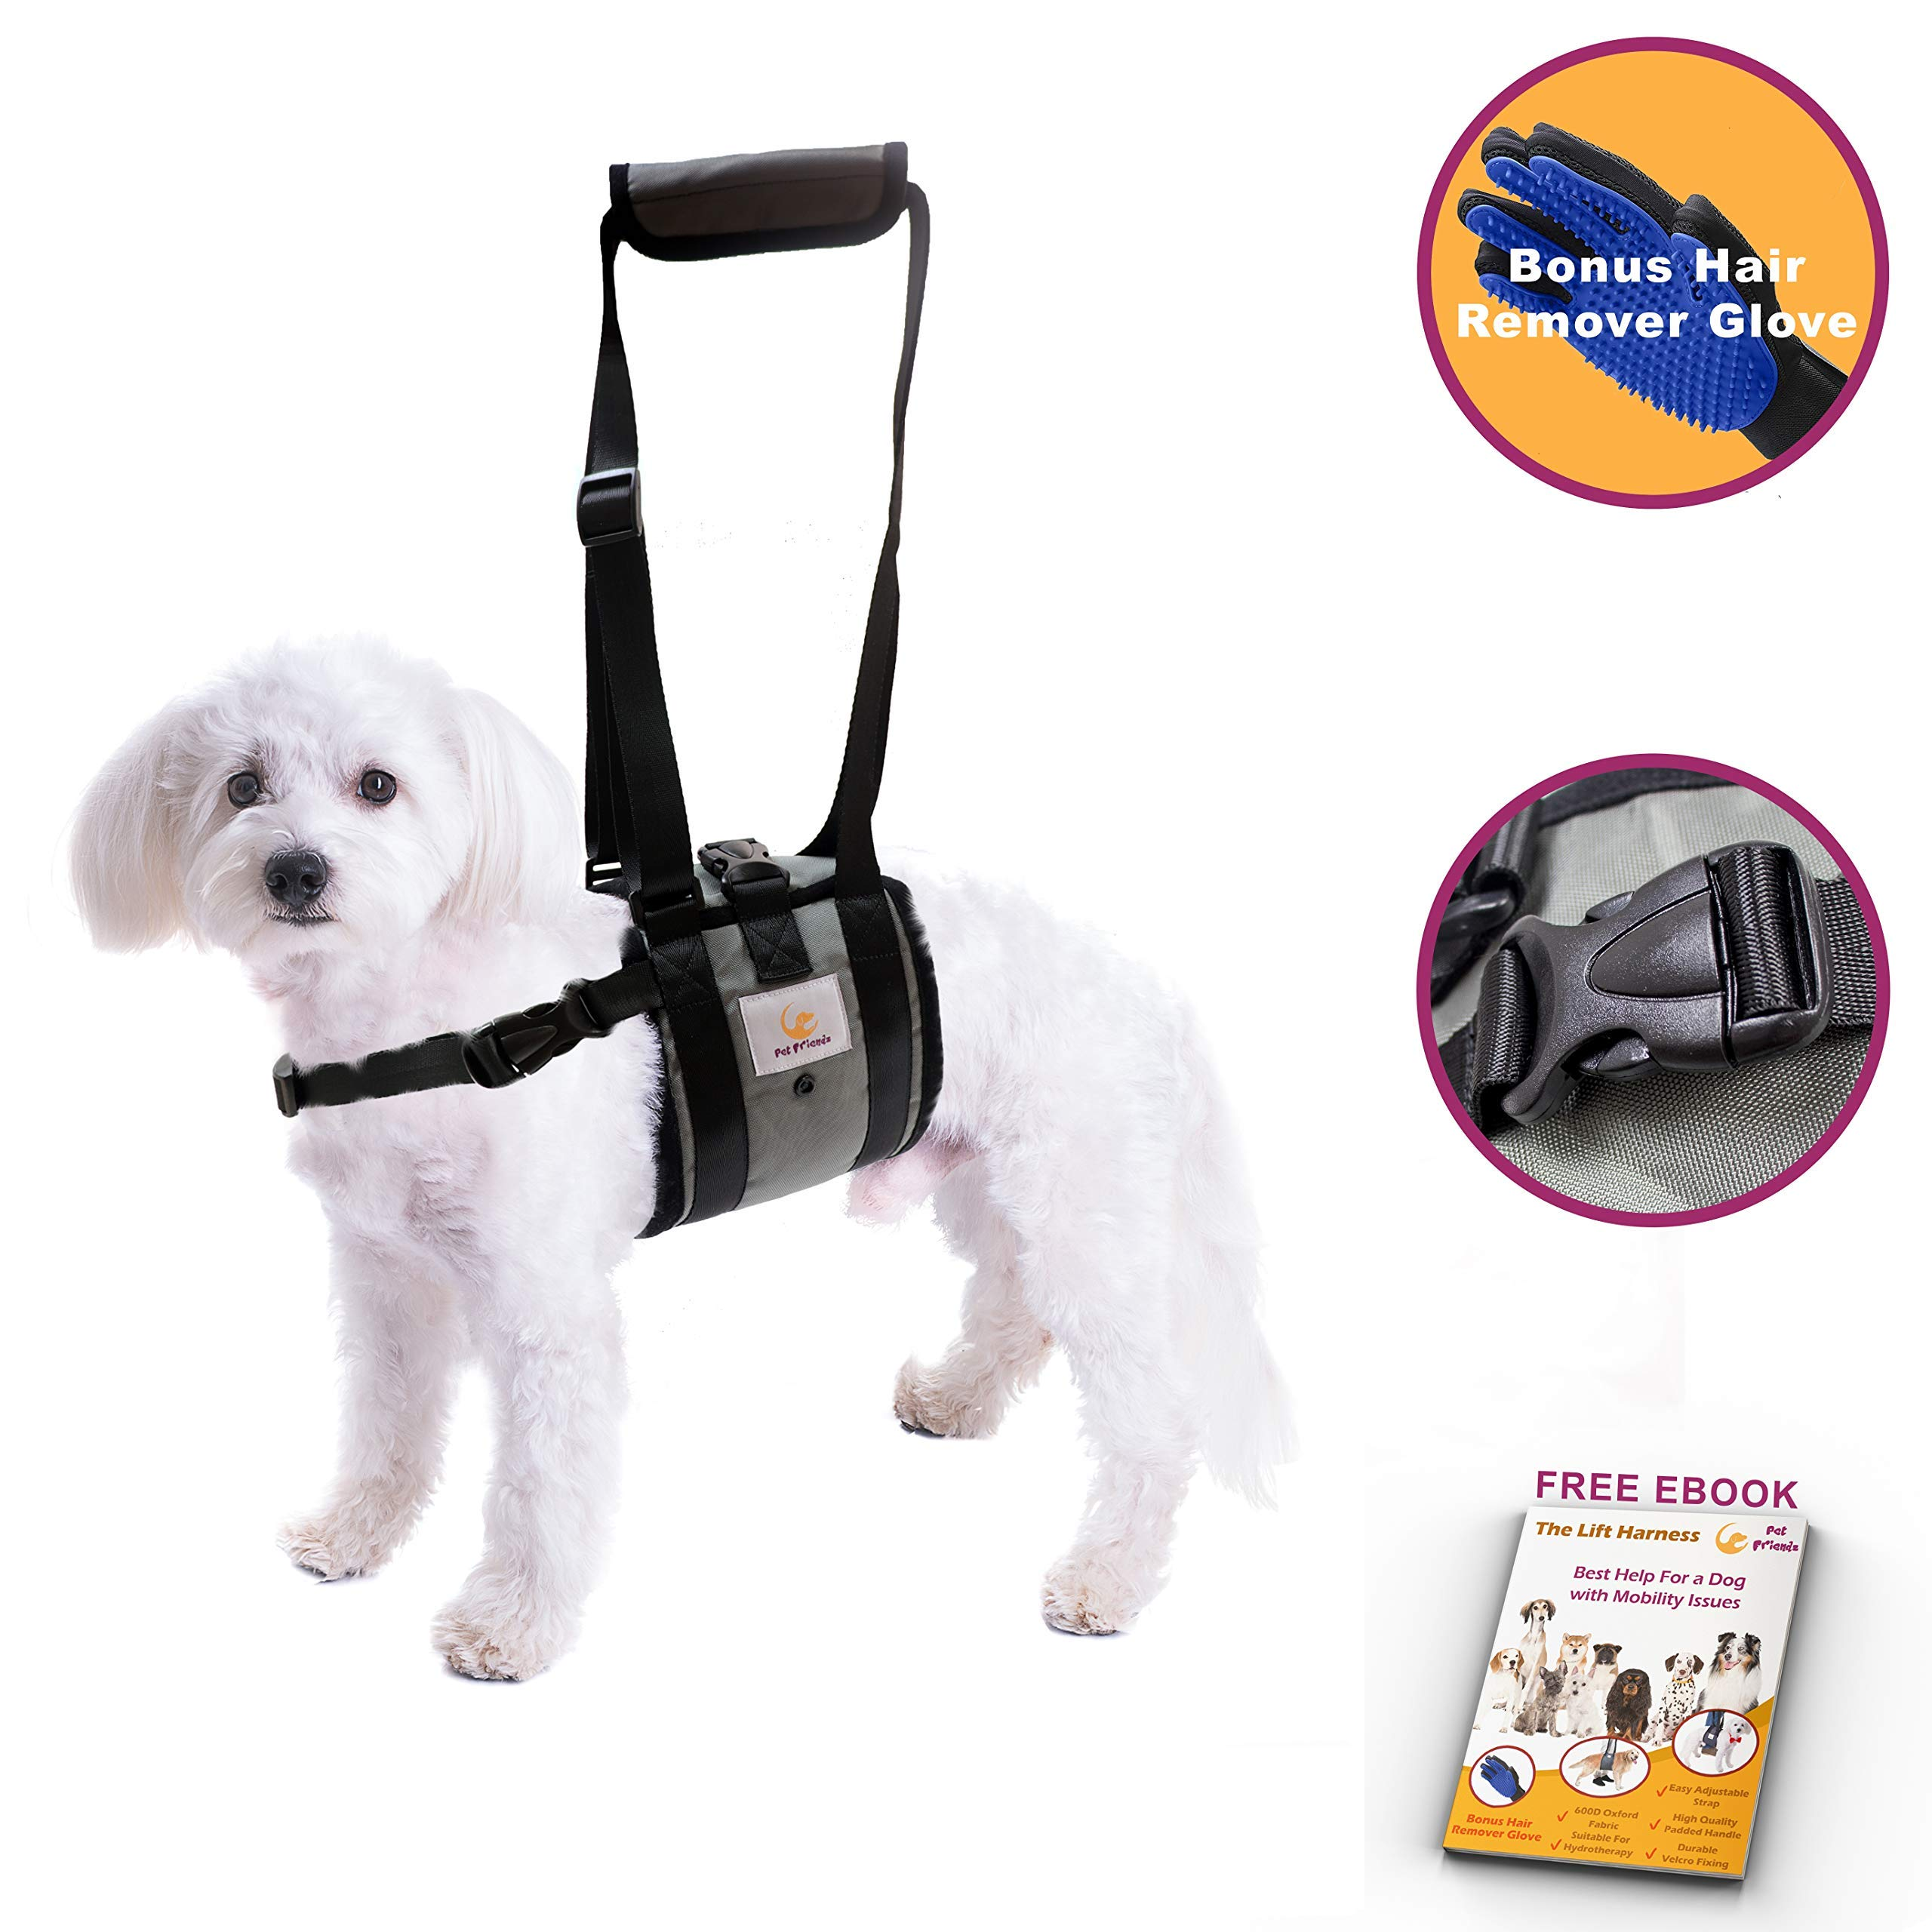 Veterinarian Approved Dog Support Harness + Hair Remover Glove - Dogs Sling Lift for Paralyzed Legs - Adjustable Straps - Mobility Rehabilitation for Injured Arthritis Elderly Disabled - Medium Breed